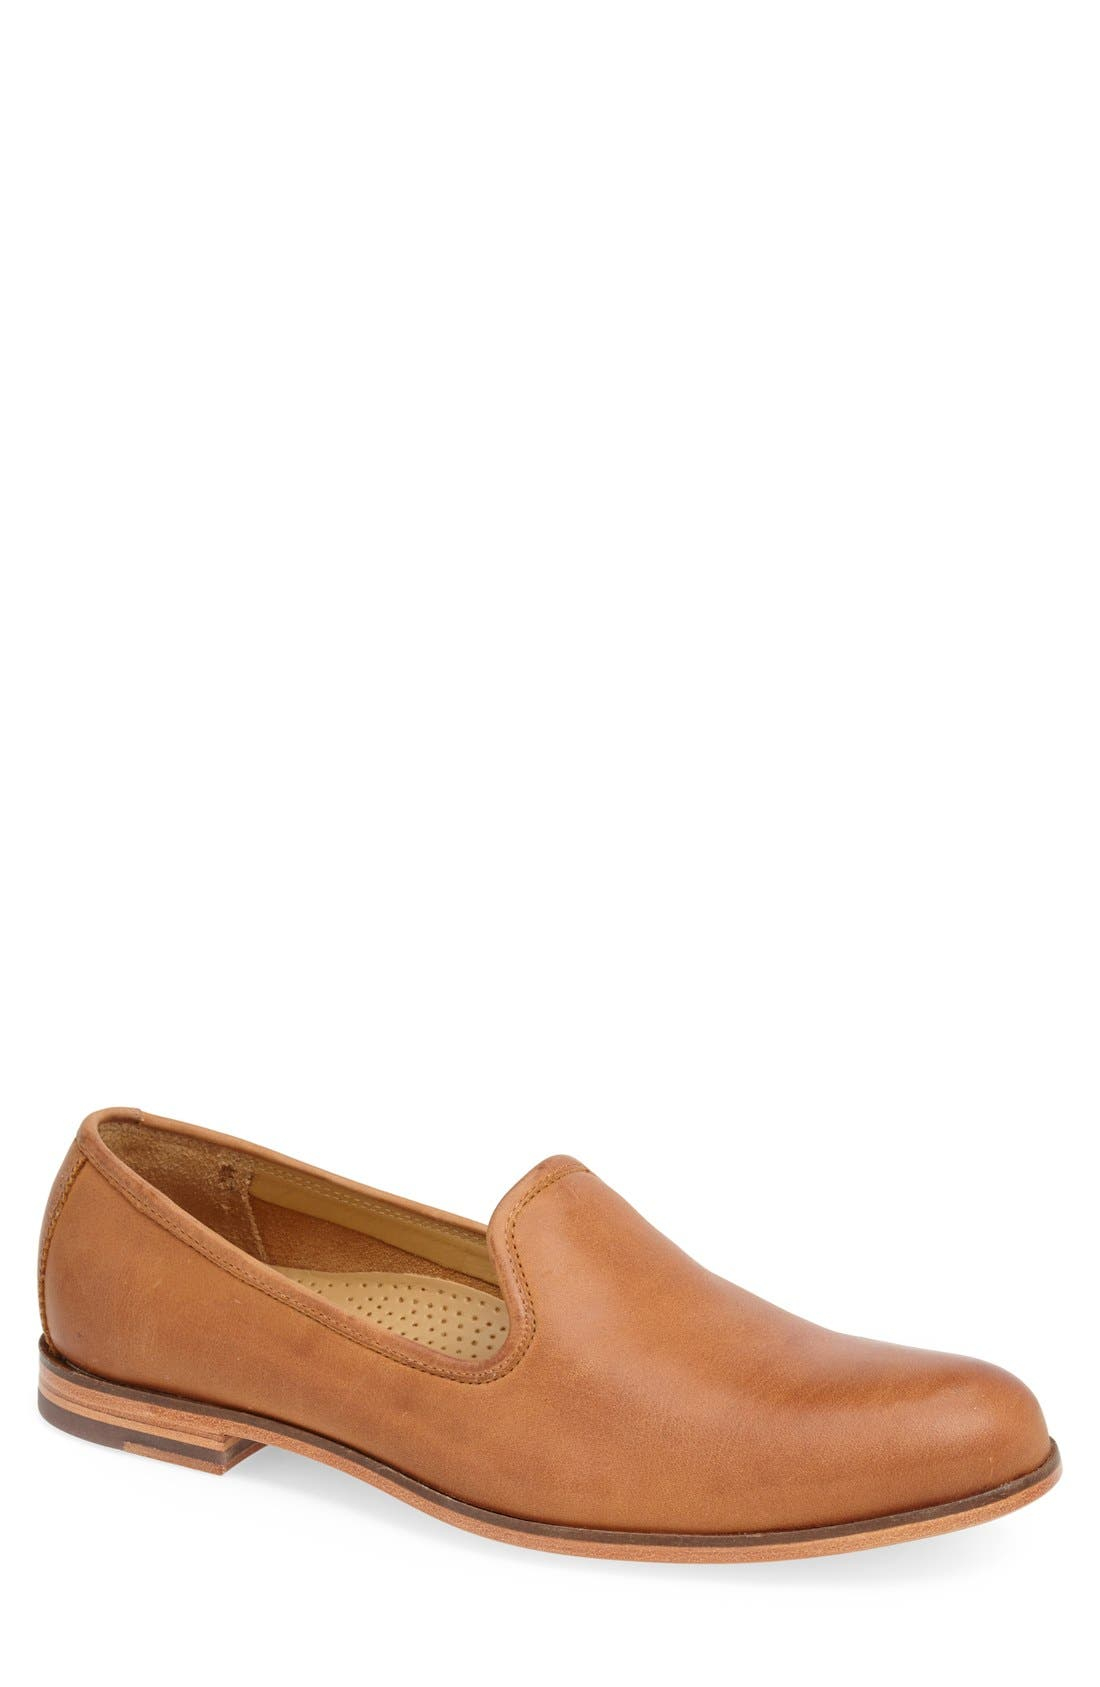 Alternate Image 1 Selected - Cole Haan 'Edison' Venetian Slip-On   (Men)